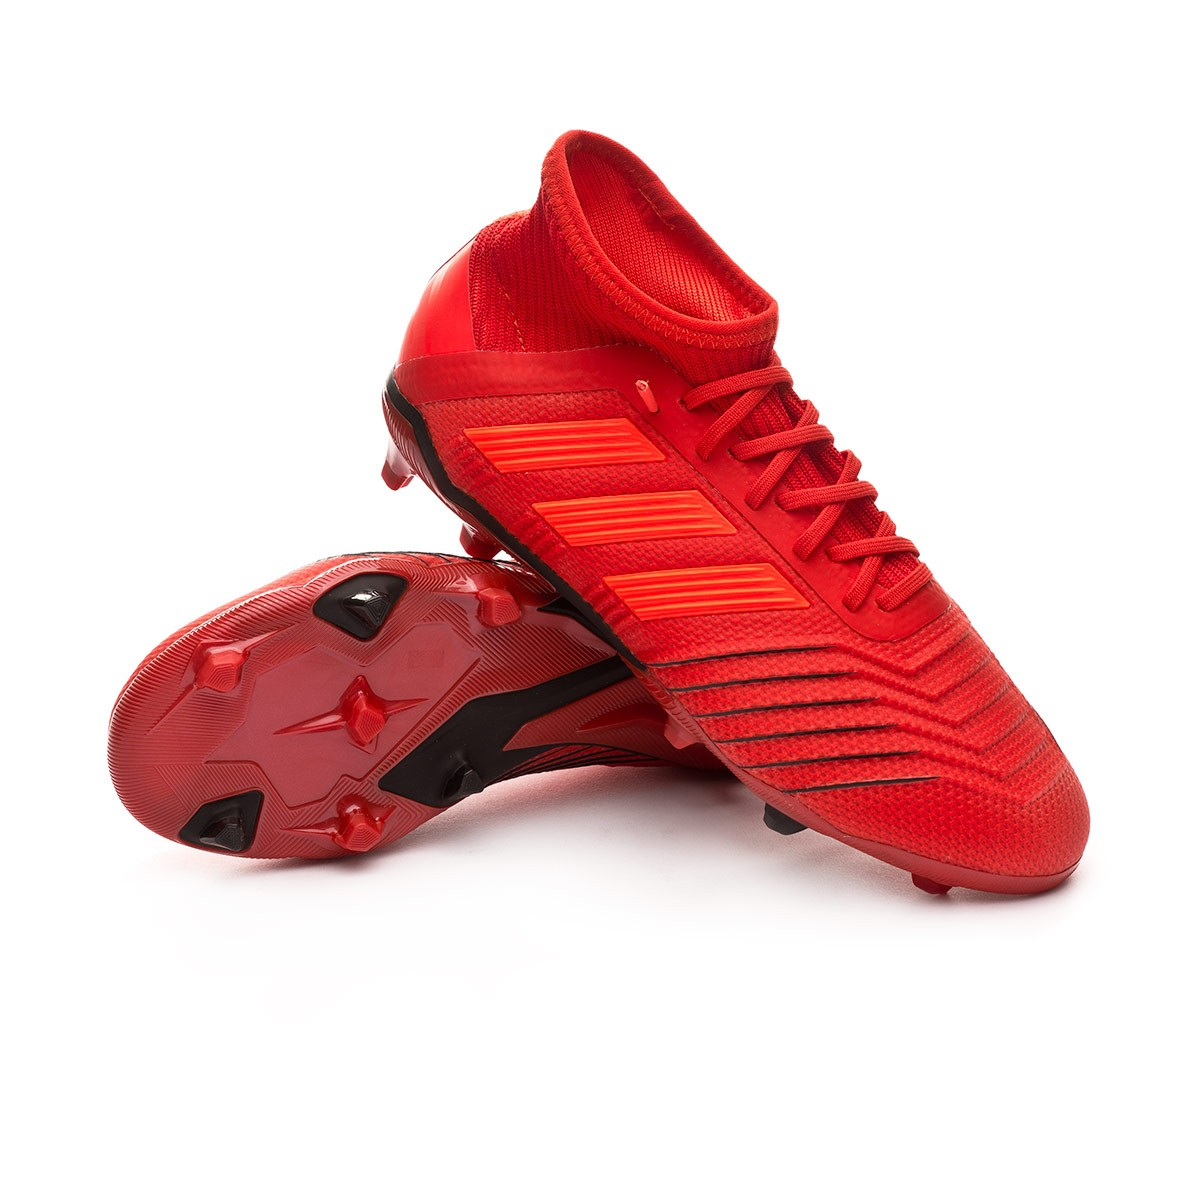 Brutal seta Larry Belmont  Football Boots adidas Kids Predator 19.1 FG Active red-Solar red-Core black  - Football store Fútbol Emotion